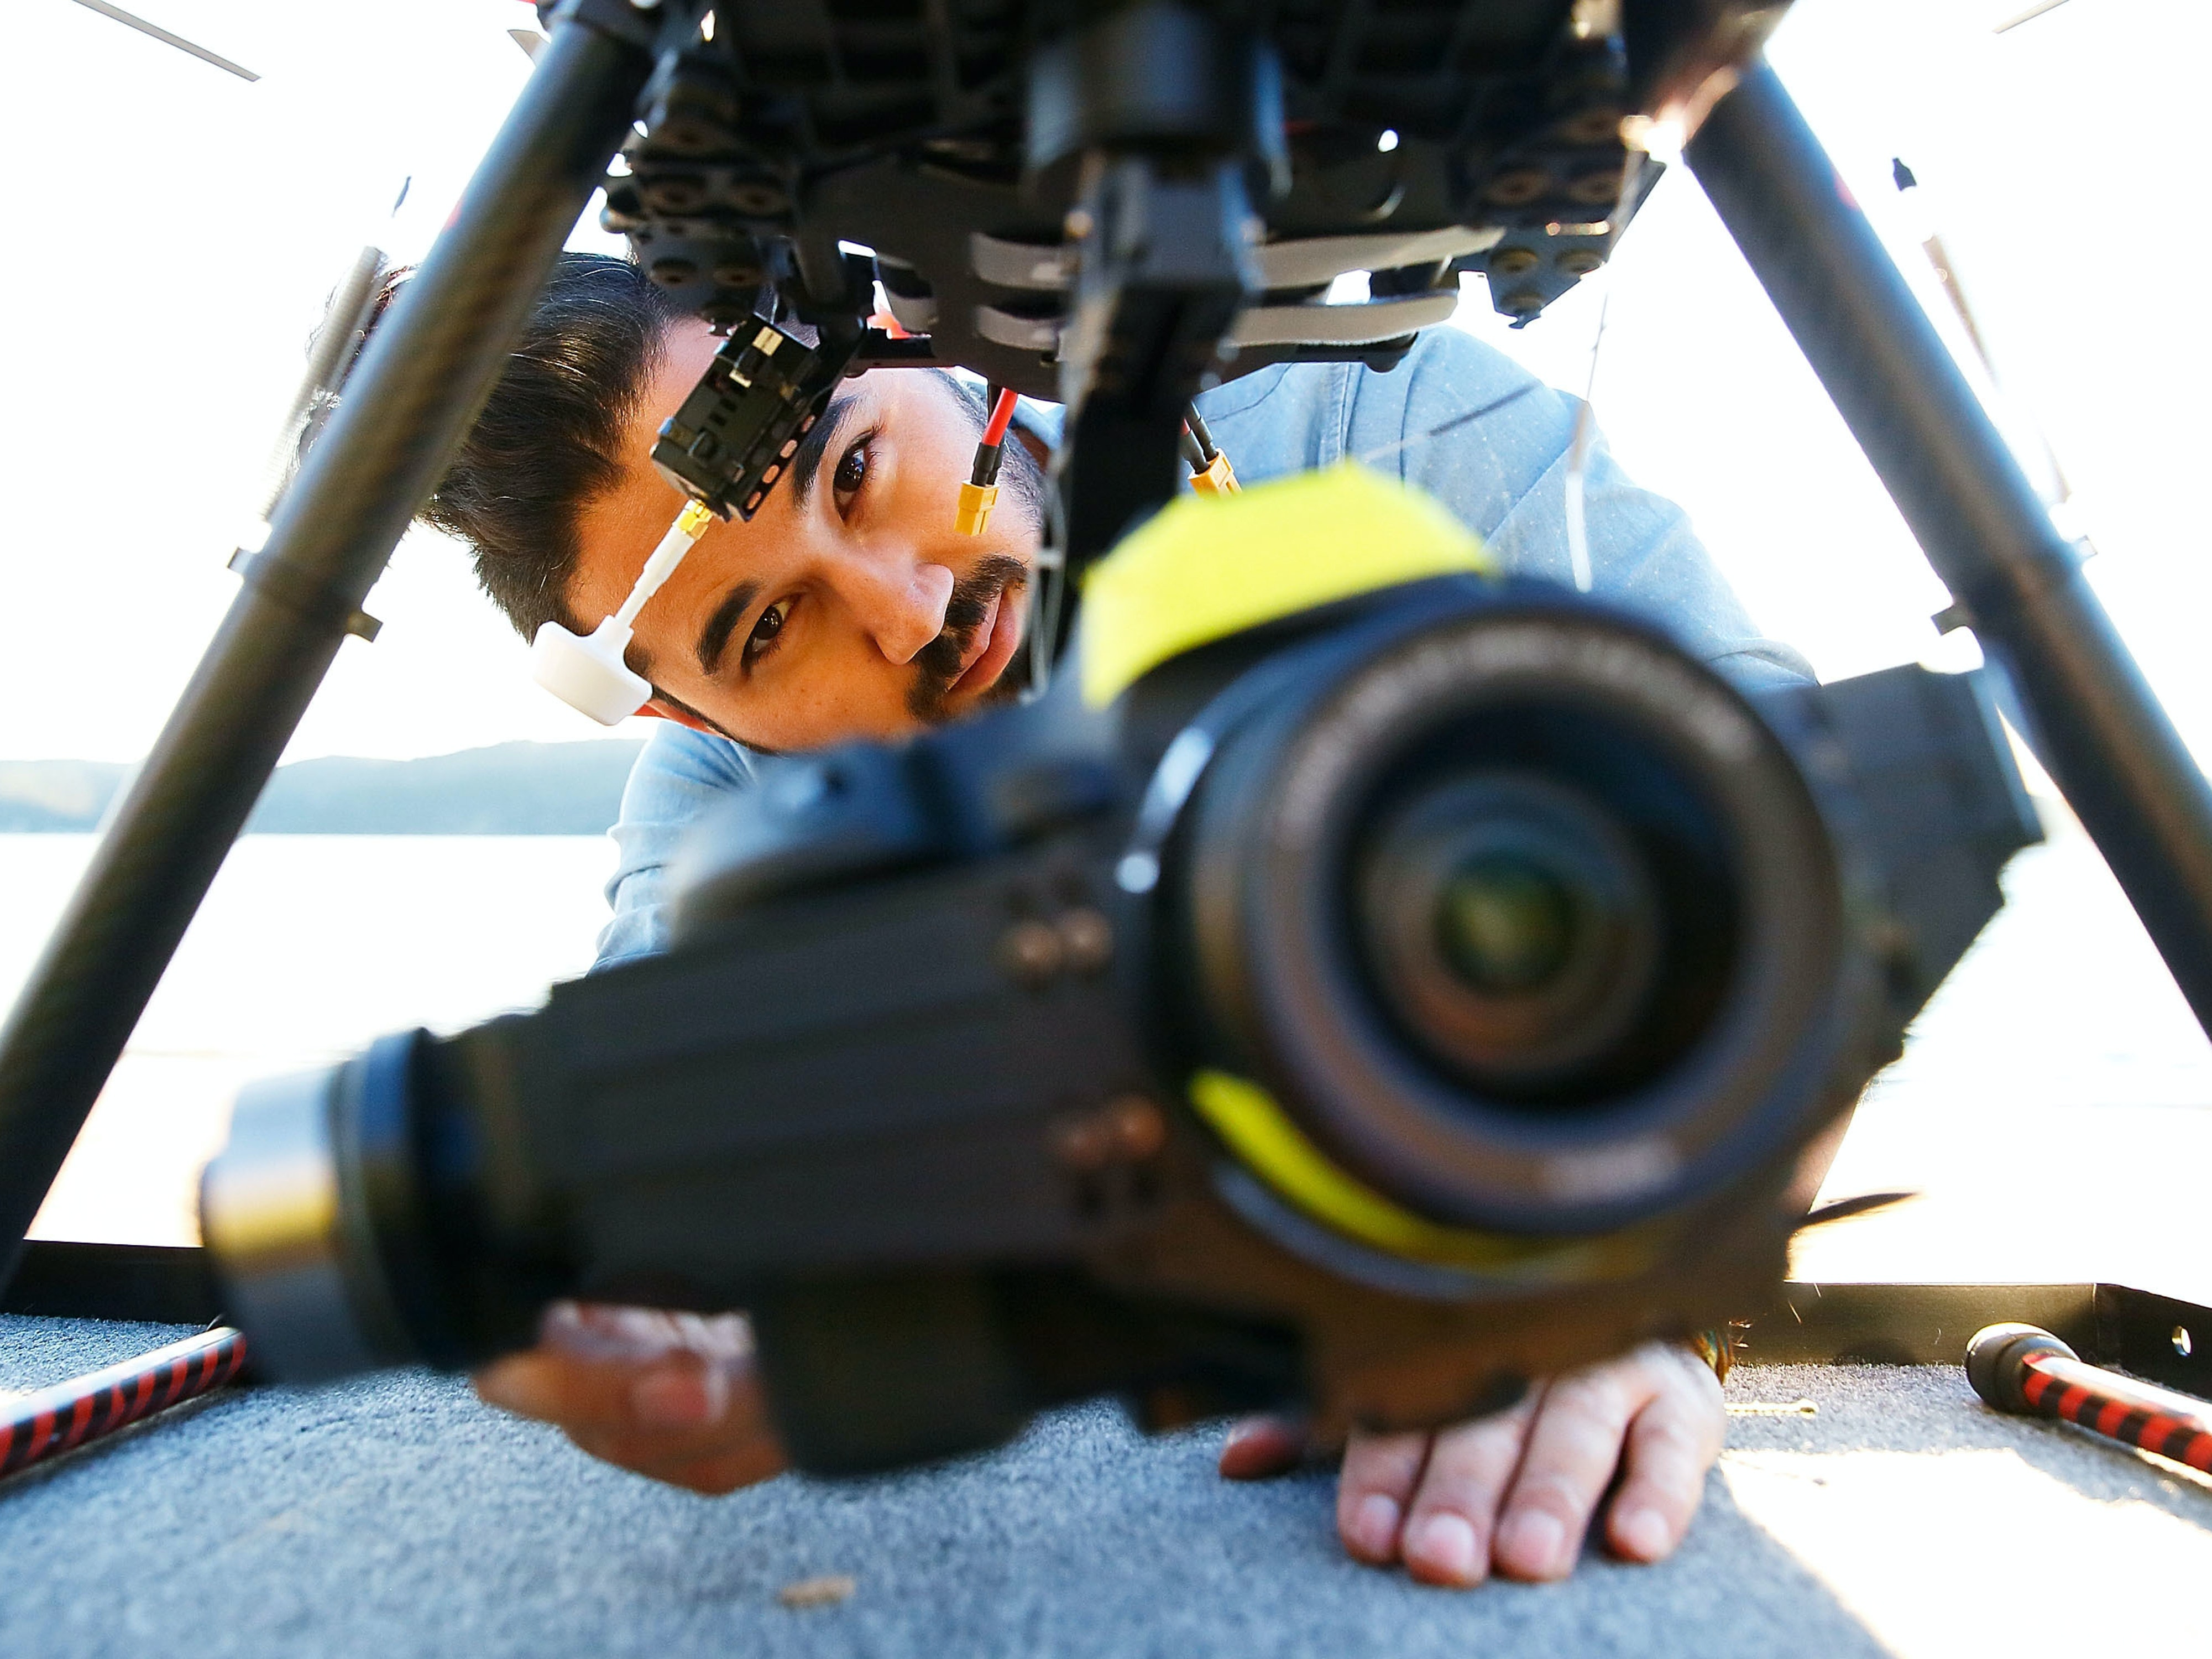 SYDNEY, AUSTRALIA - JULY 04: Drone operator, Ken Butti checks the camera gimbal of the custom built DJI s1000 Drone prior to flight at Palm Beach on July 4, 2014 in Sydney, Australia. Commercial and recreational UAV (Unmanned Aerial Vehicles) sales in Australia have regulators concerned about safety, privacy and security, while the commercial industries of mining, farming, property, and sport are embracing the new technology. Under the current CASA (Civil Aviation Safety Authority) regulations all unmanned aircraft weighing more than 2kg need to have a UAS operators certificate. Licensed operators are not allowed to fly above 400ft, not within 5km of an airfield boundary and can't fly within 30 metres of people not involved with the operation.  (Photo by Brendon Thorne/Getty Images)